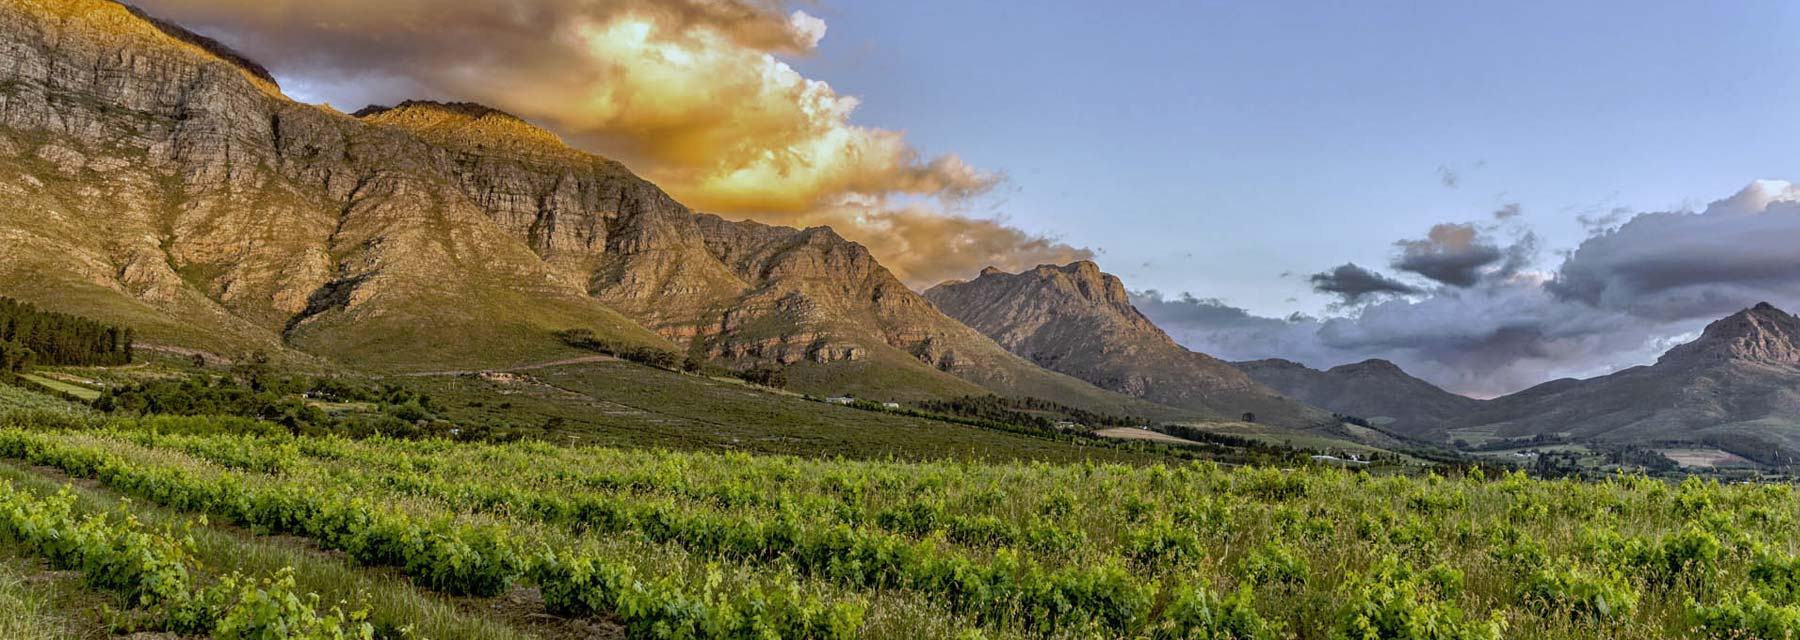 Winelands3